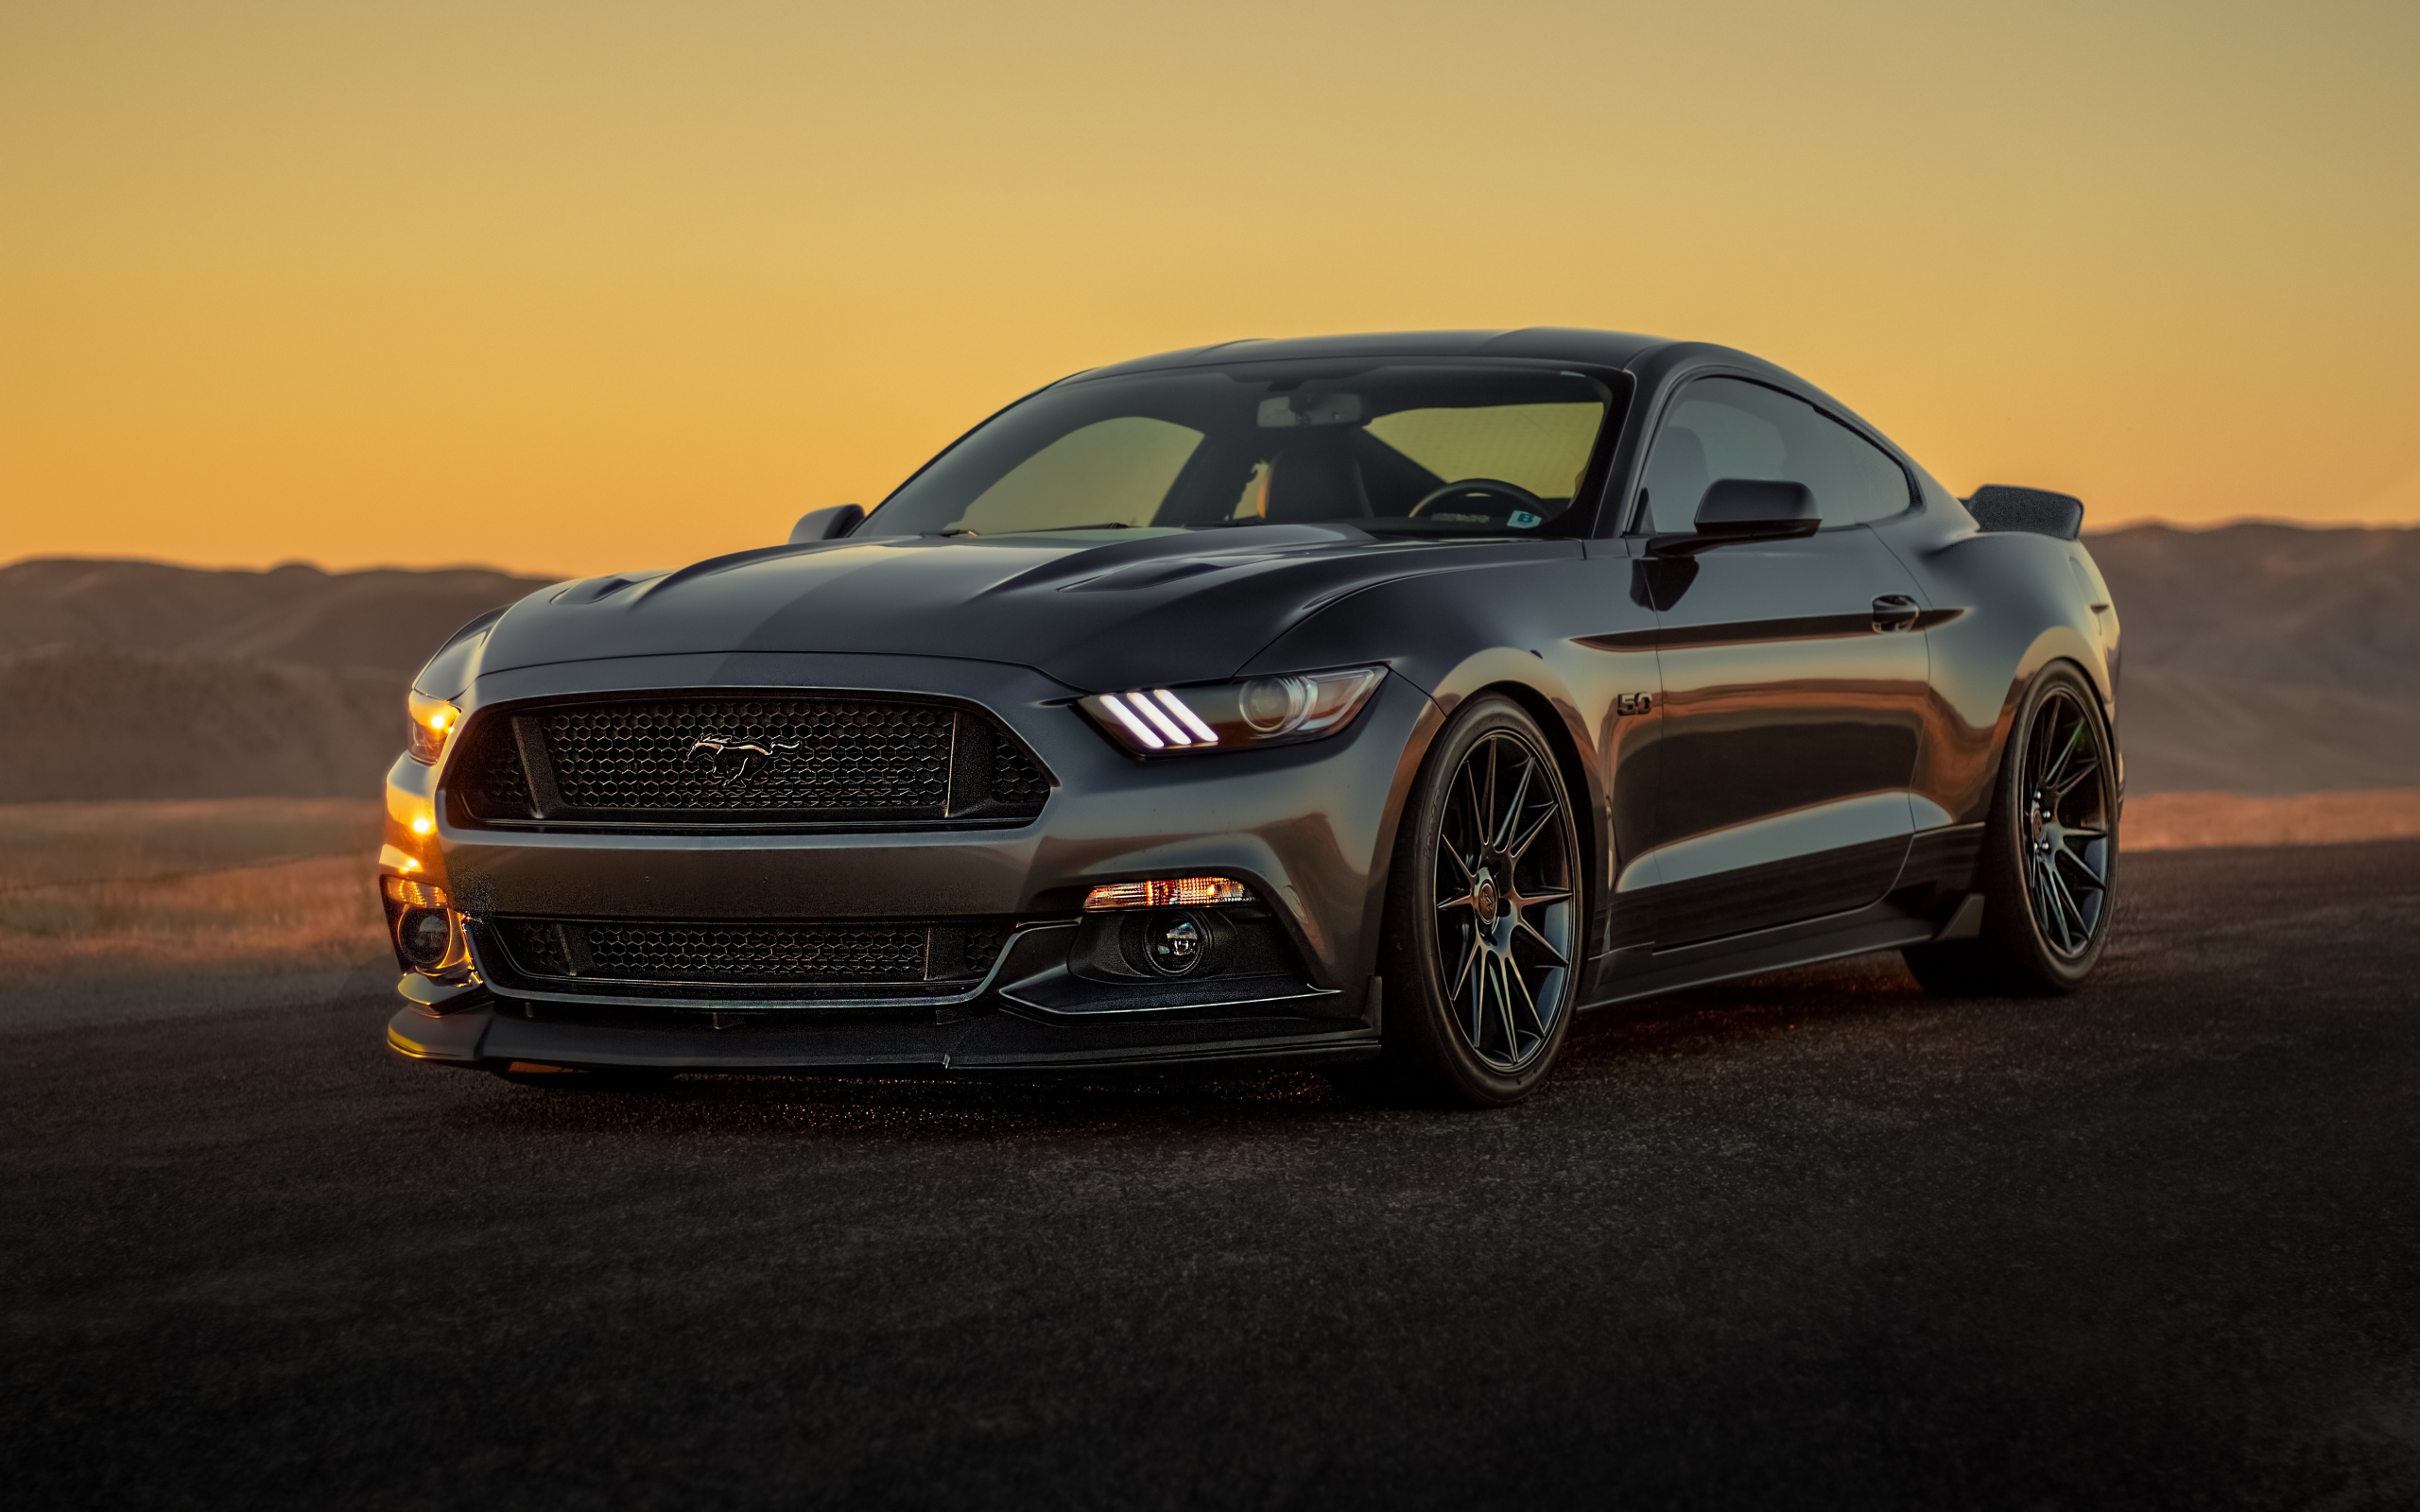 Wallpaper Of Ford Mustang Car Black Muscle Car Background Hd Image